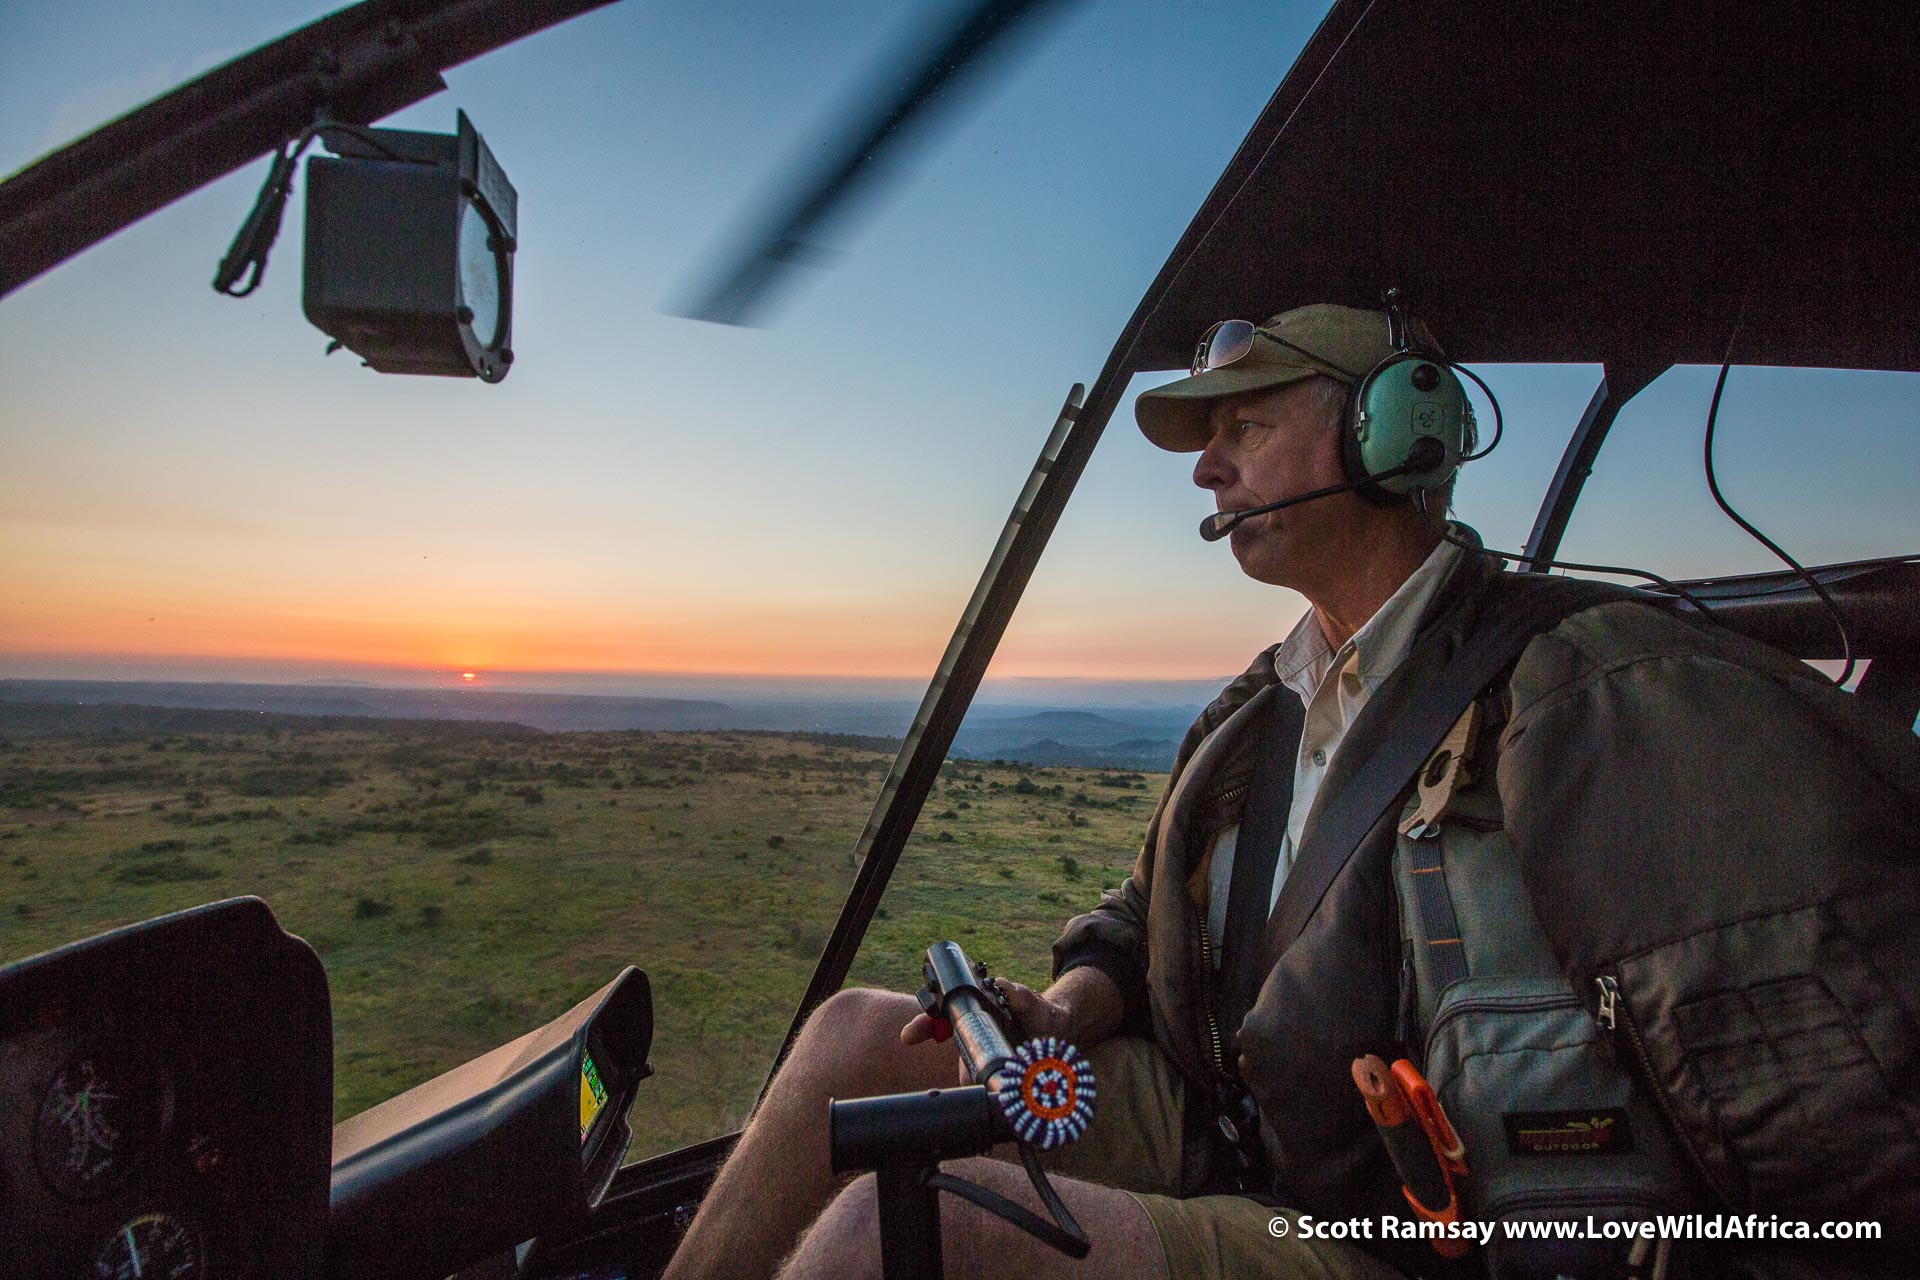 Chopper pilot Andy Boucher, showing us the lay of the land in Laikipia